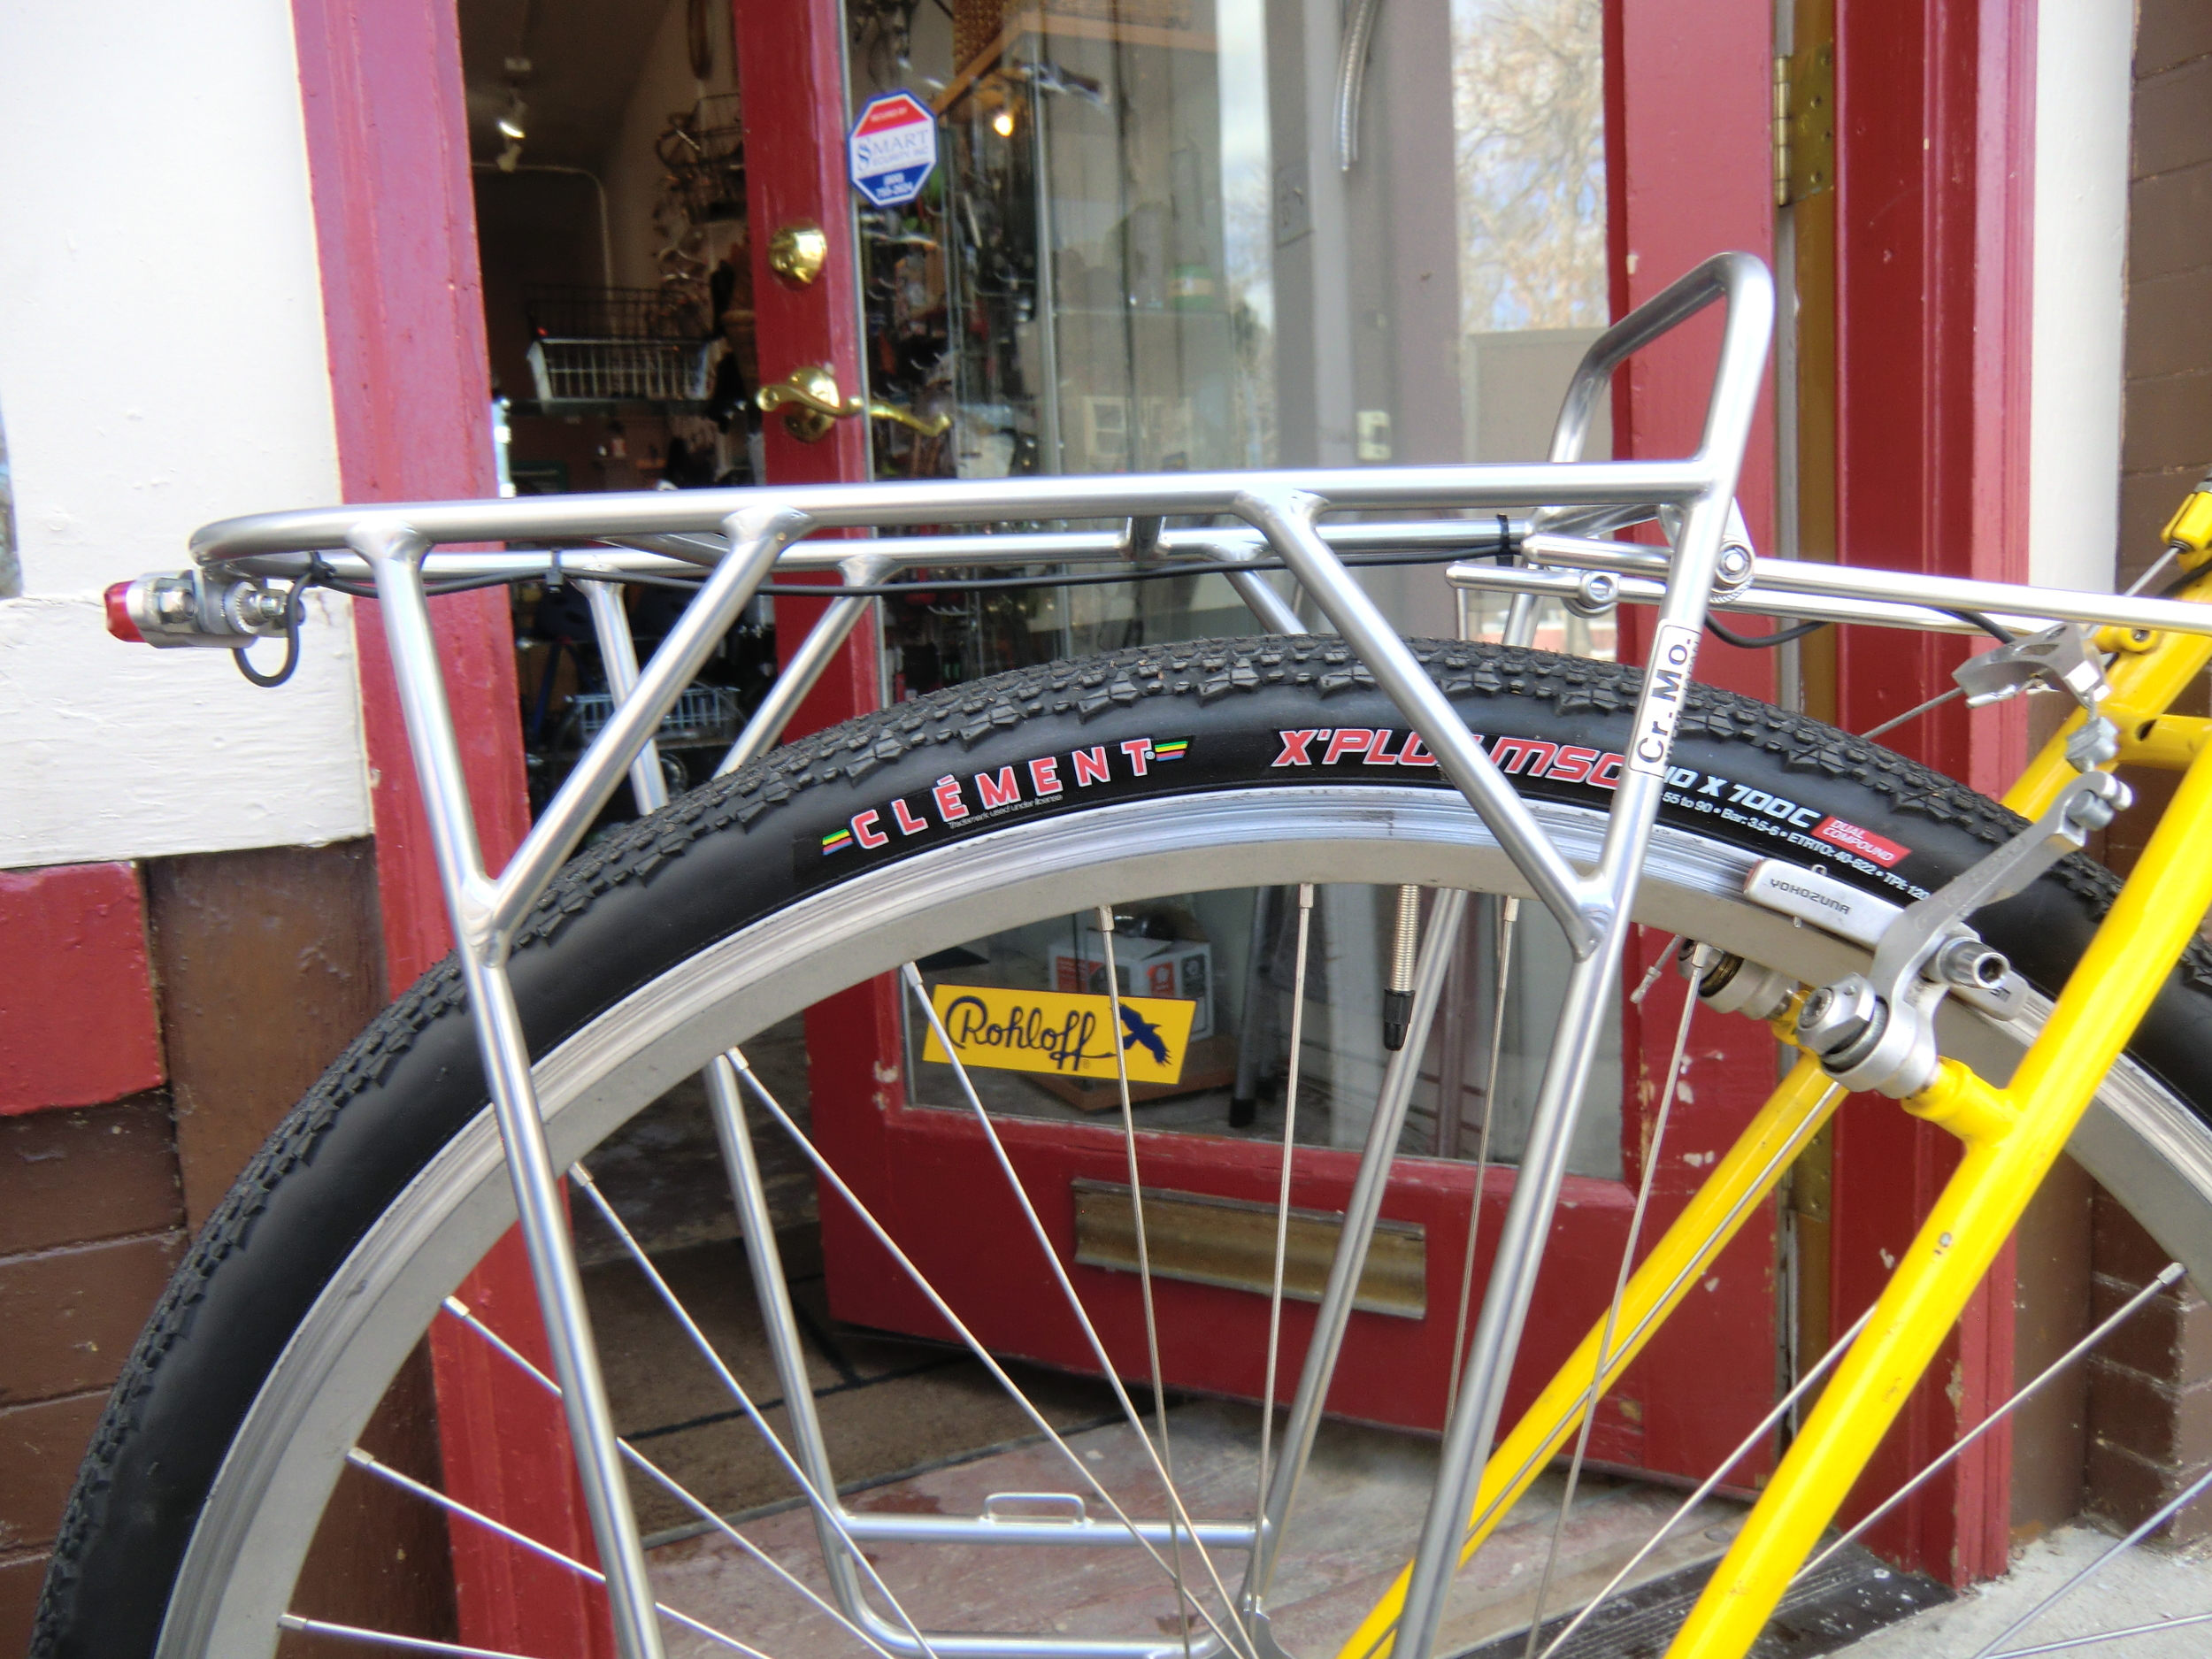 NITTO rear rack, Clement tires